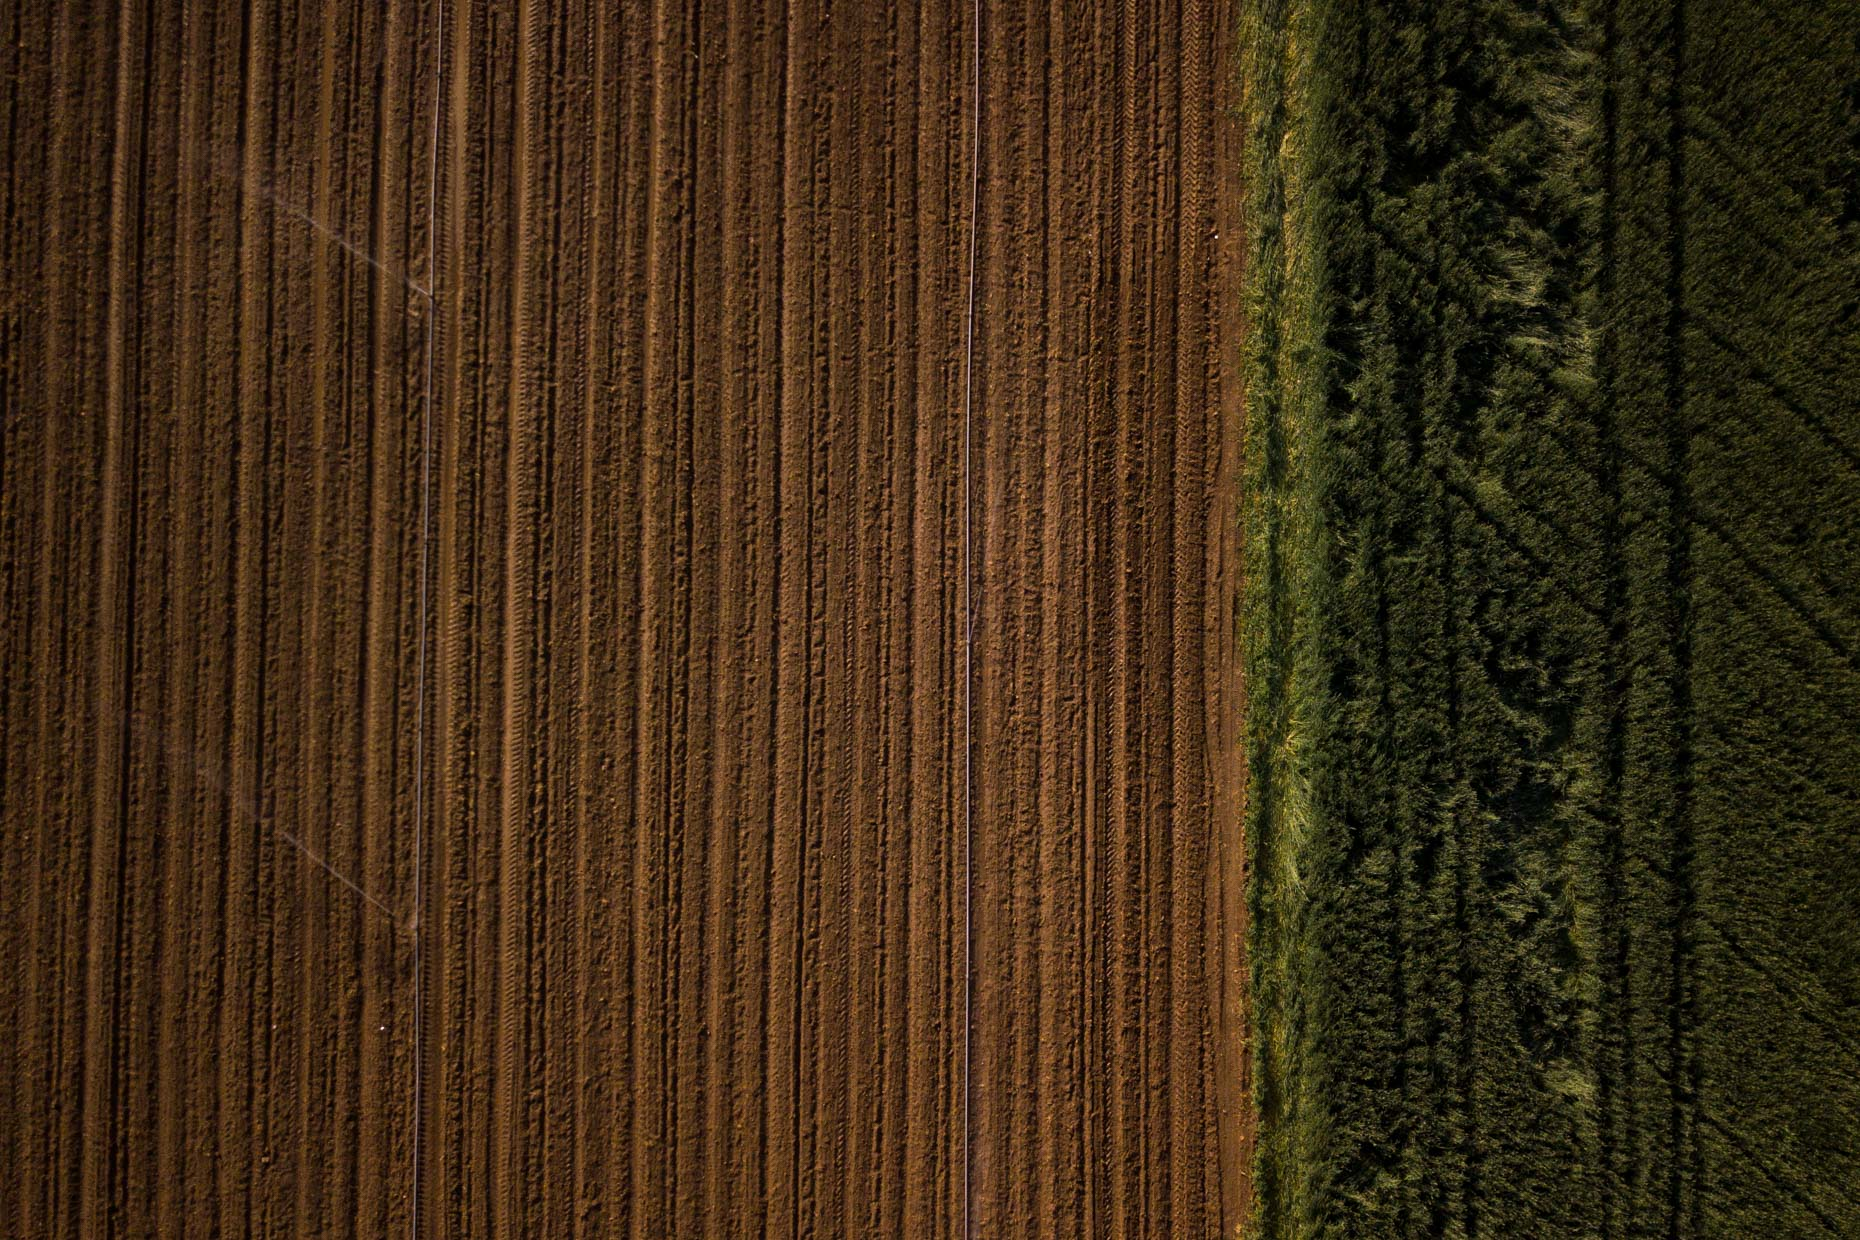 Aerial photograph of irrigation on a farm field